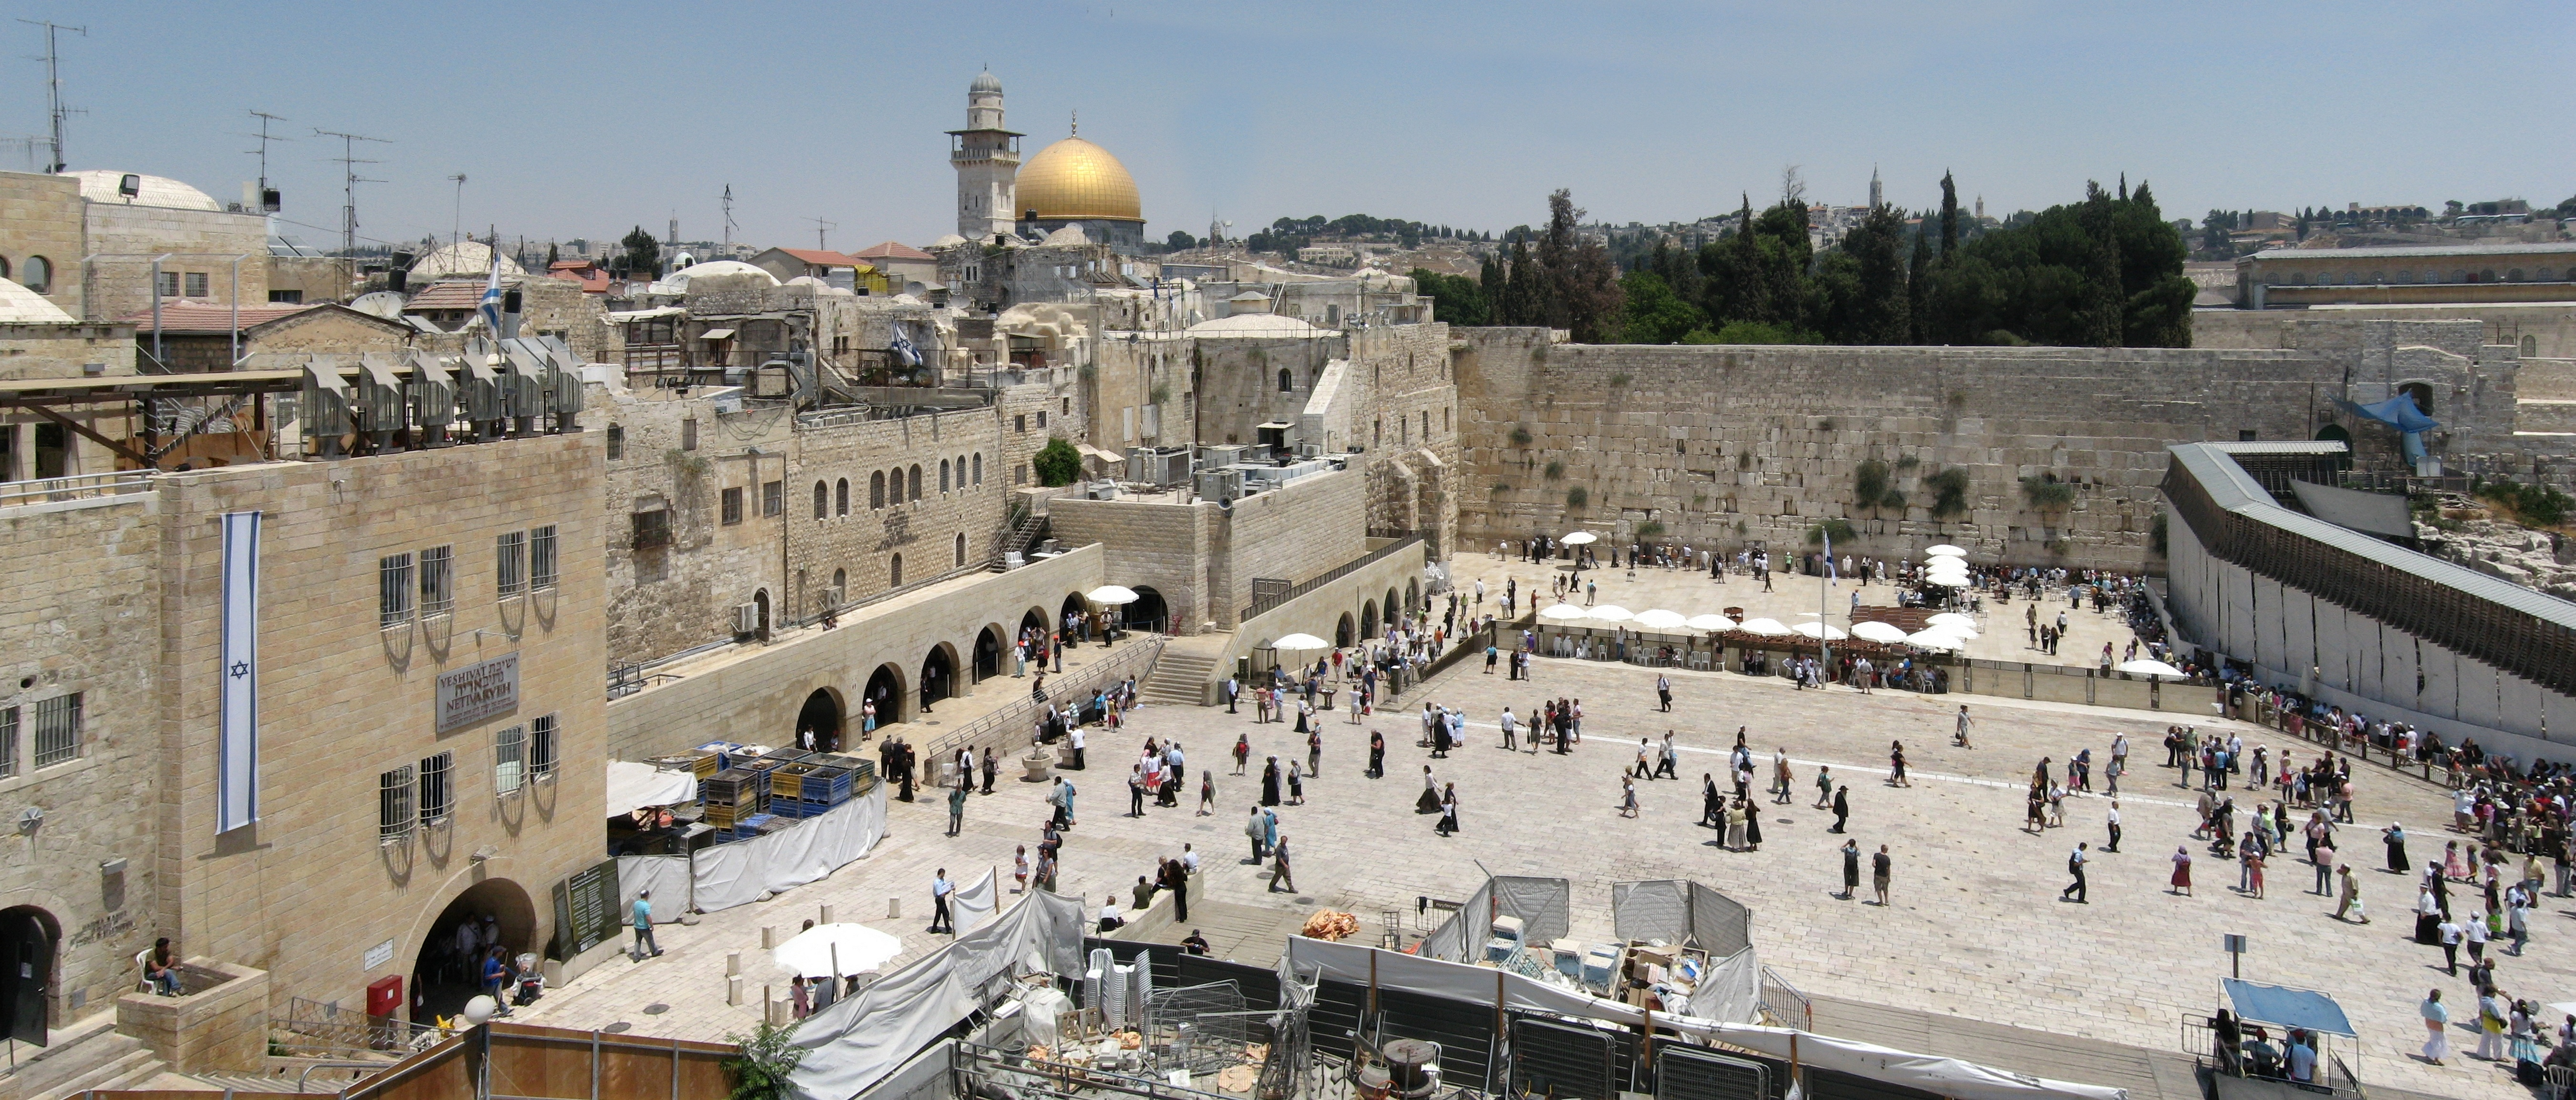 the Western Wall, Jerusalem, israel tour package from Bangalore, India